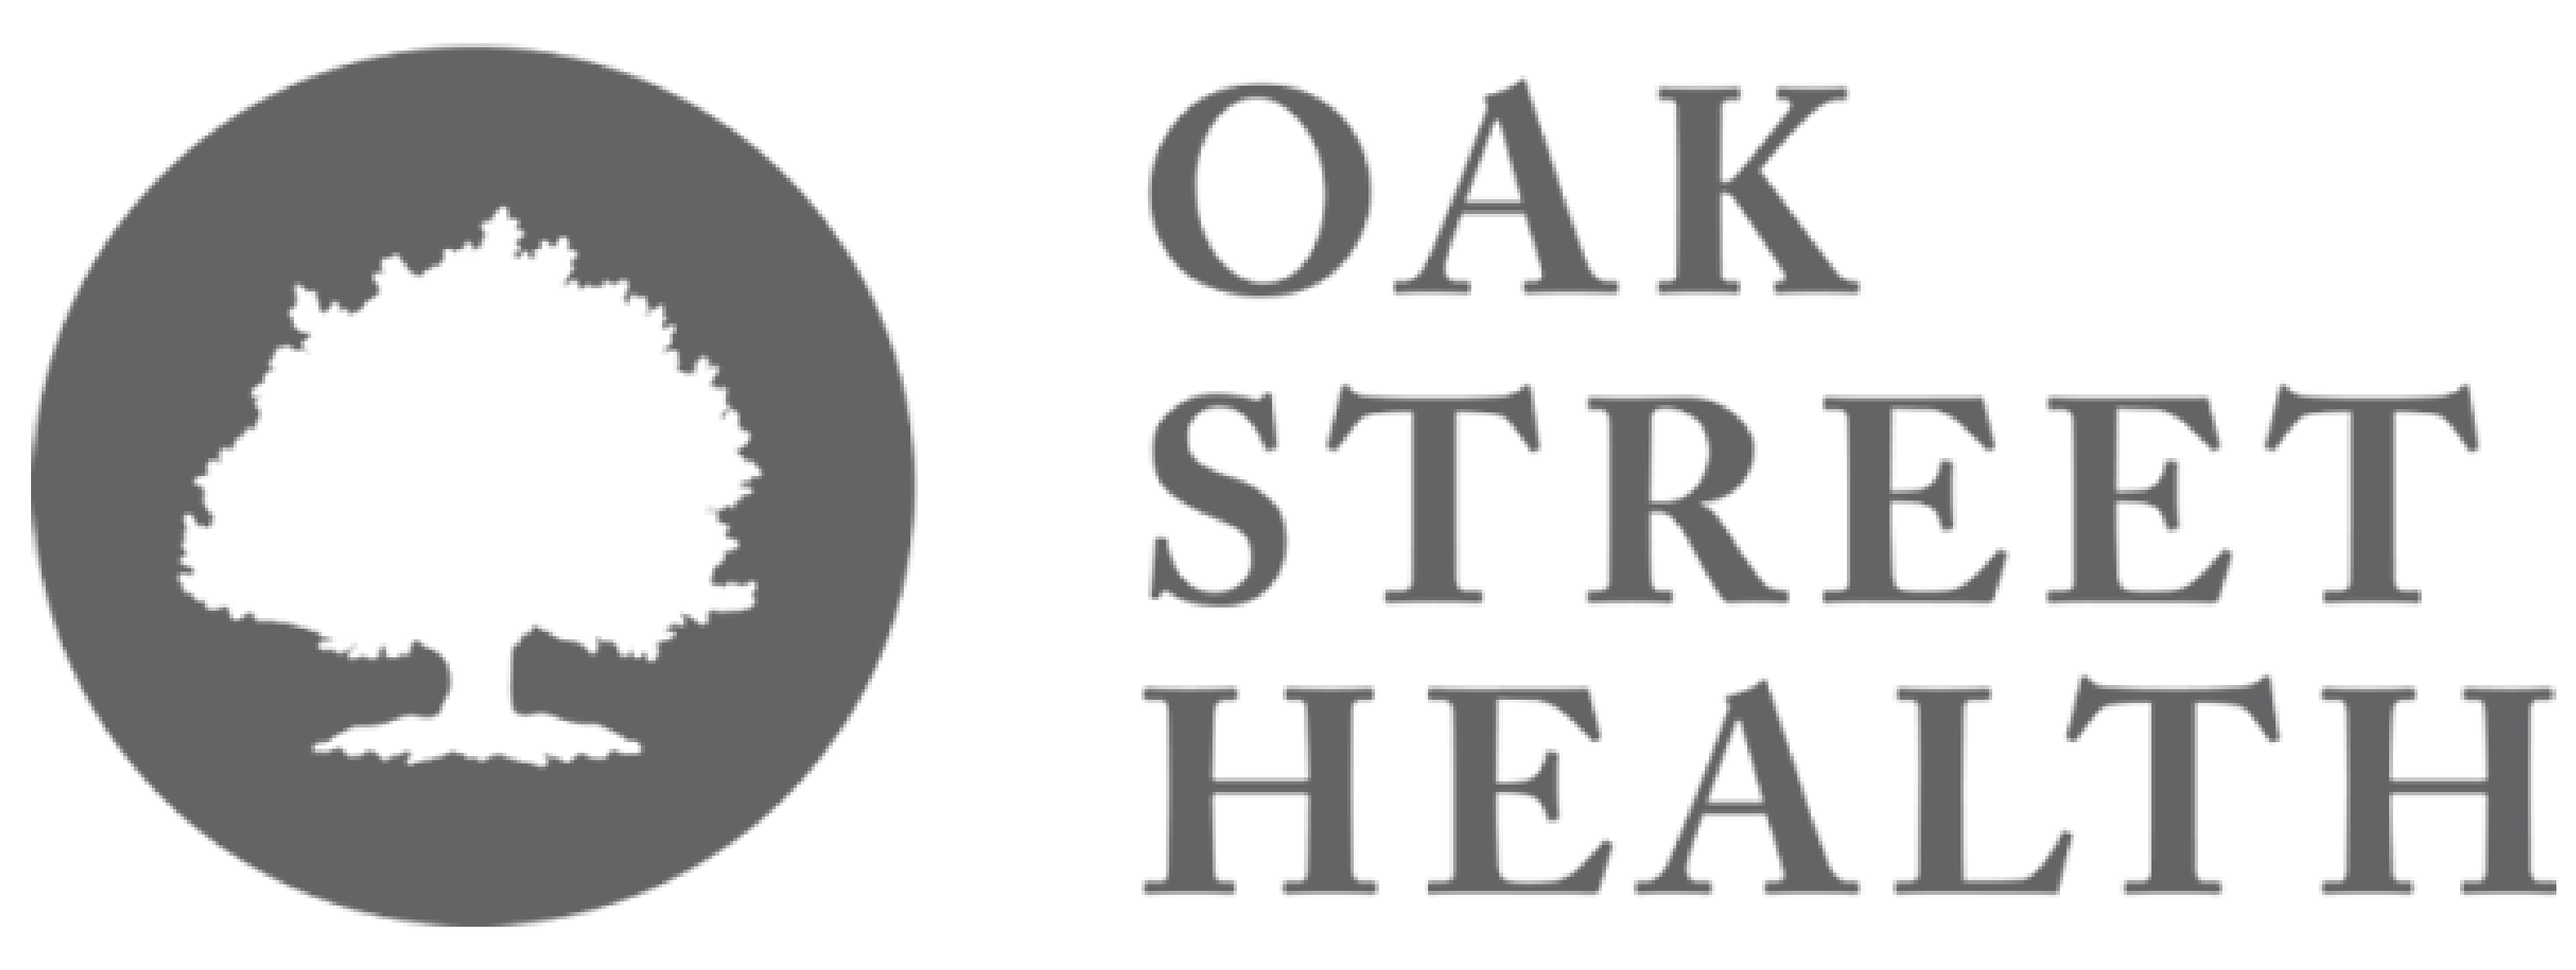 oakstreethealth_cropped